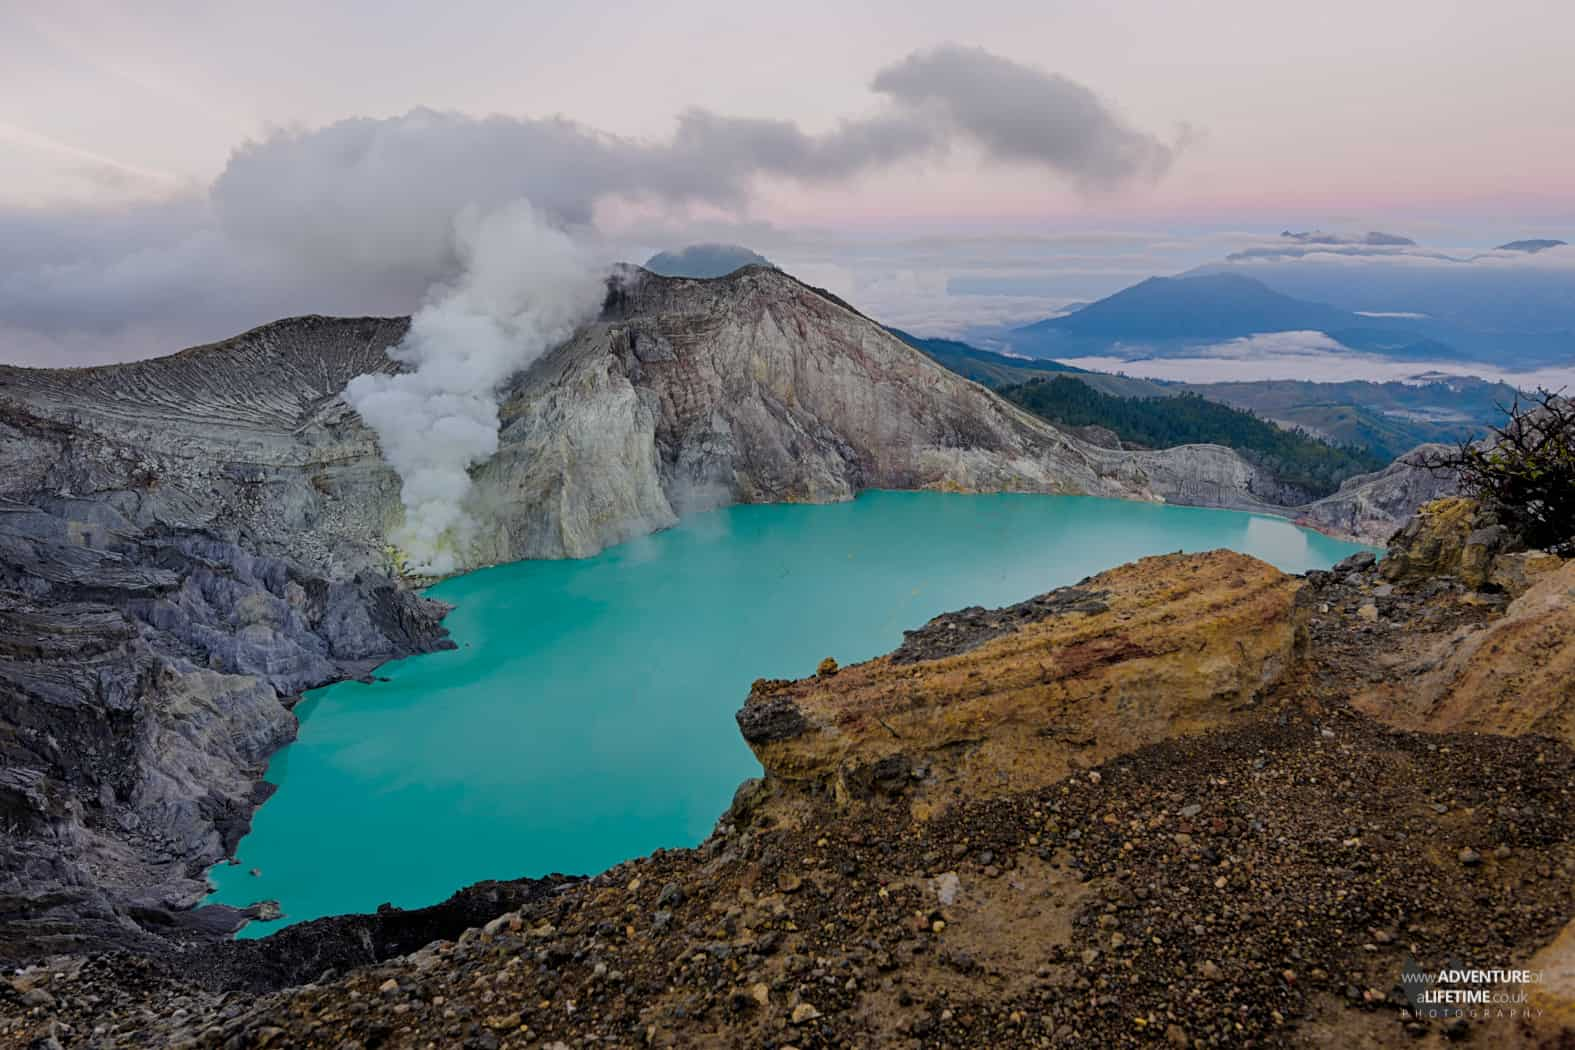 Majestic Ijen Blue Crater Lake in Java